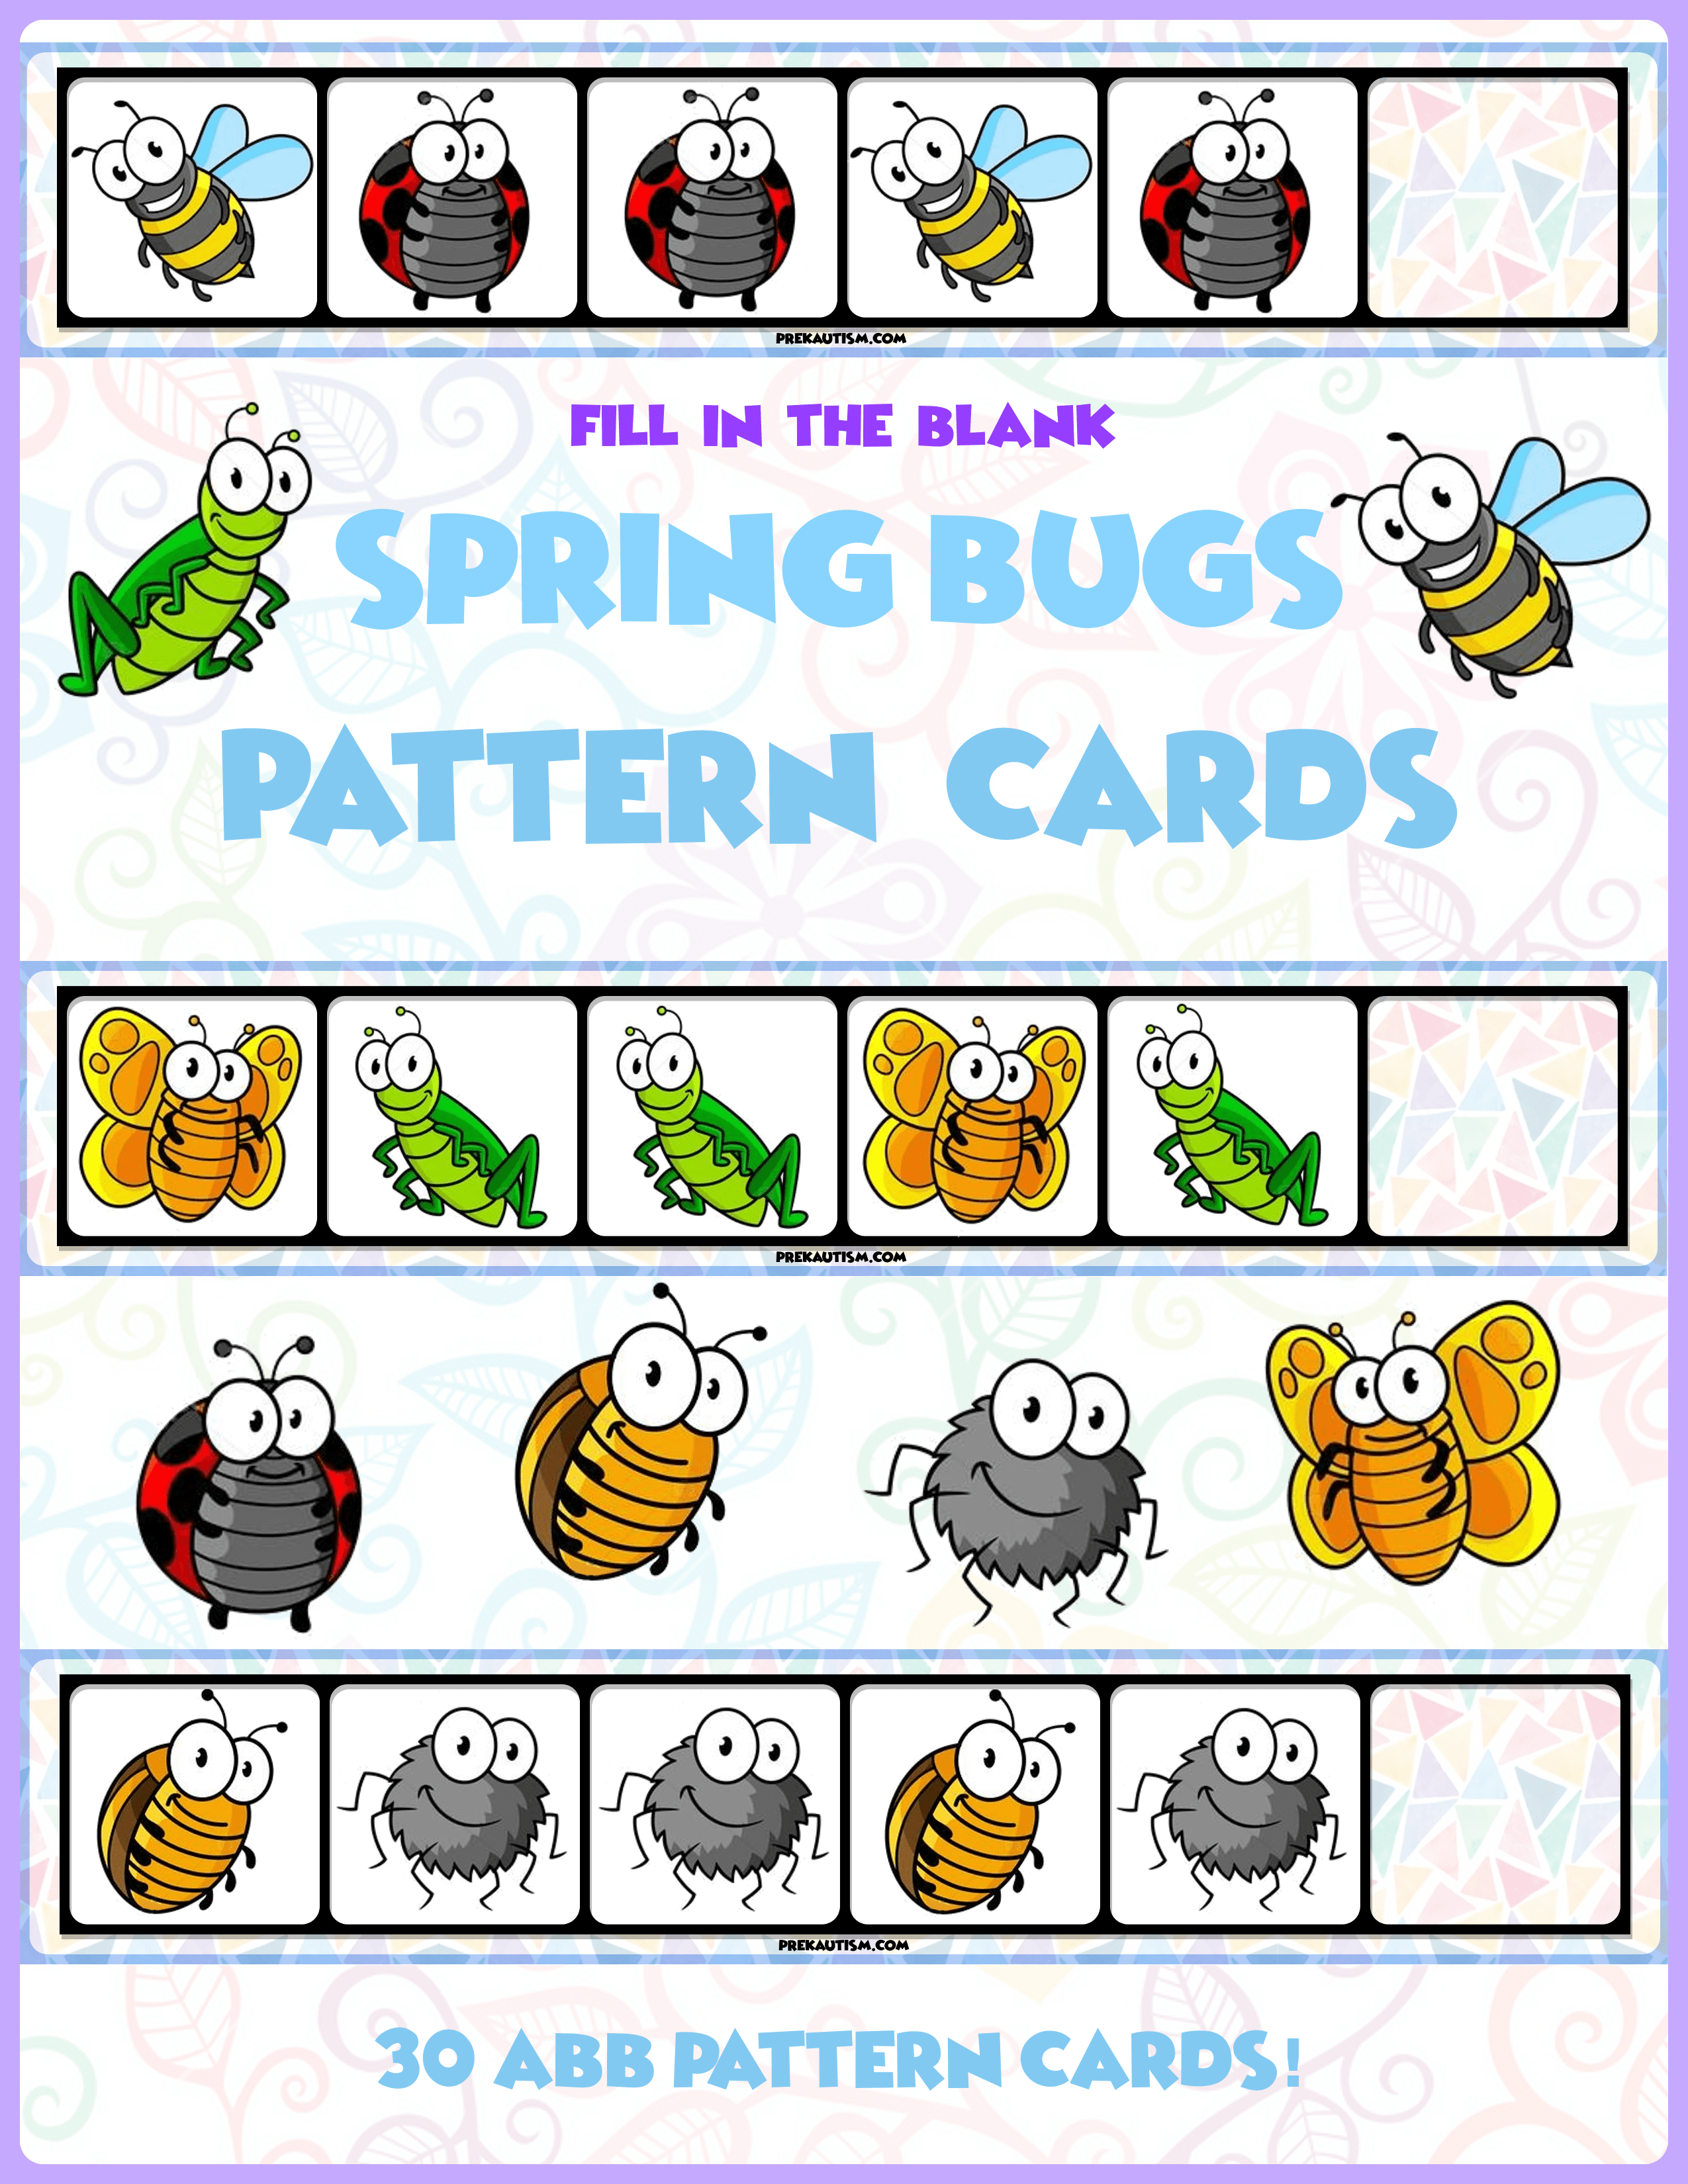 Spring Bugs Abb Pattern Cards